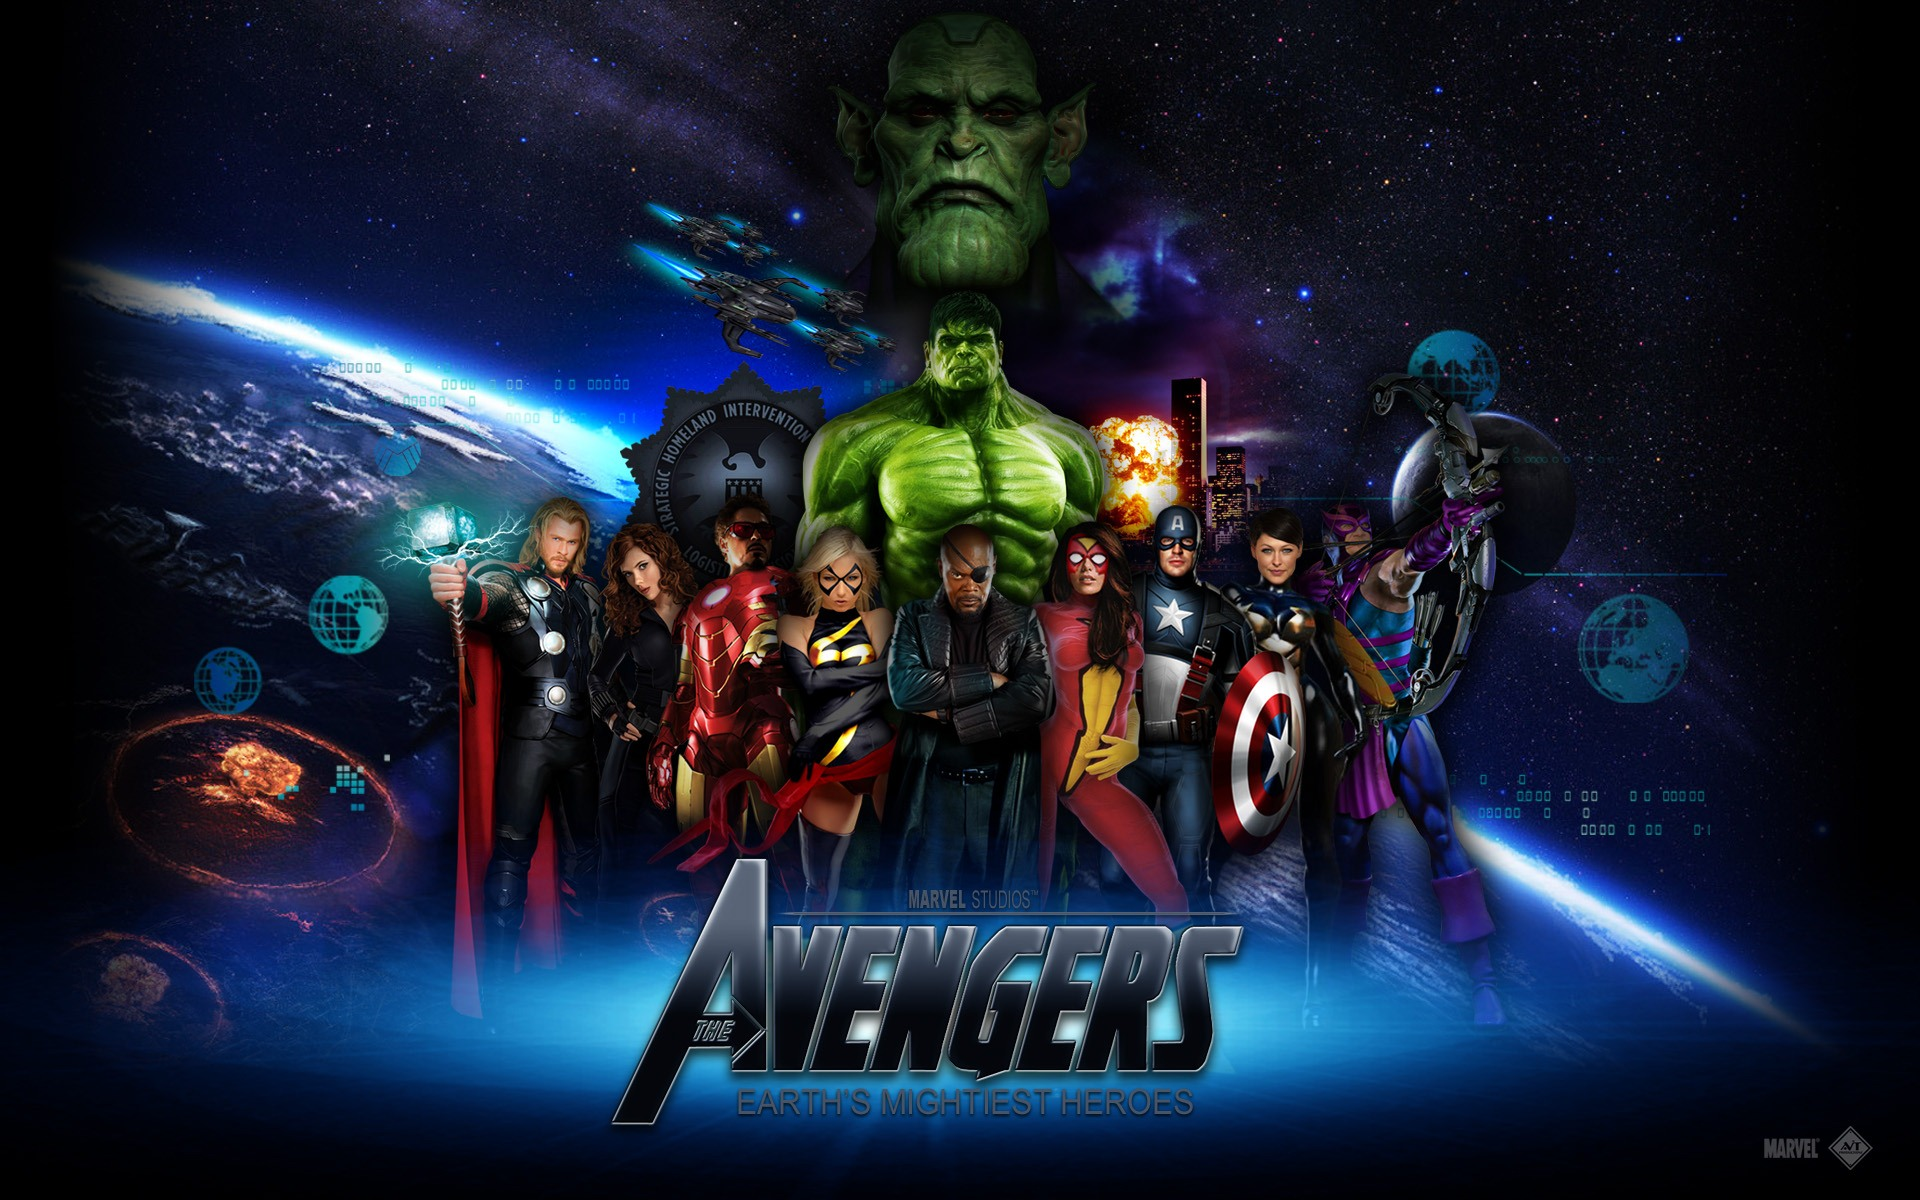 Hd Wallpapers For Pc Of Avengers